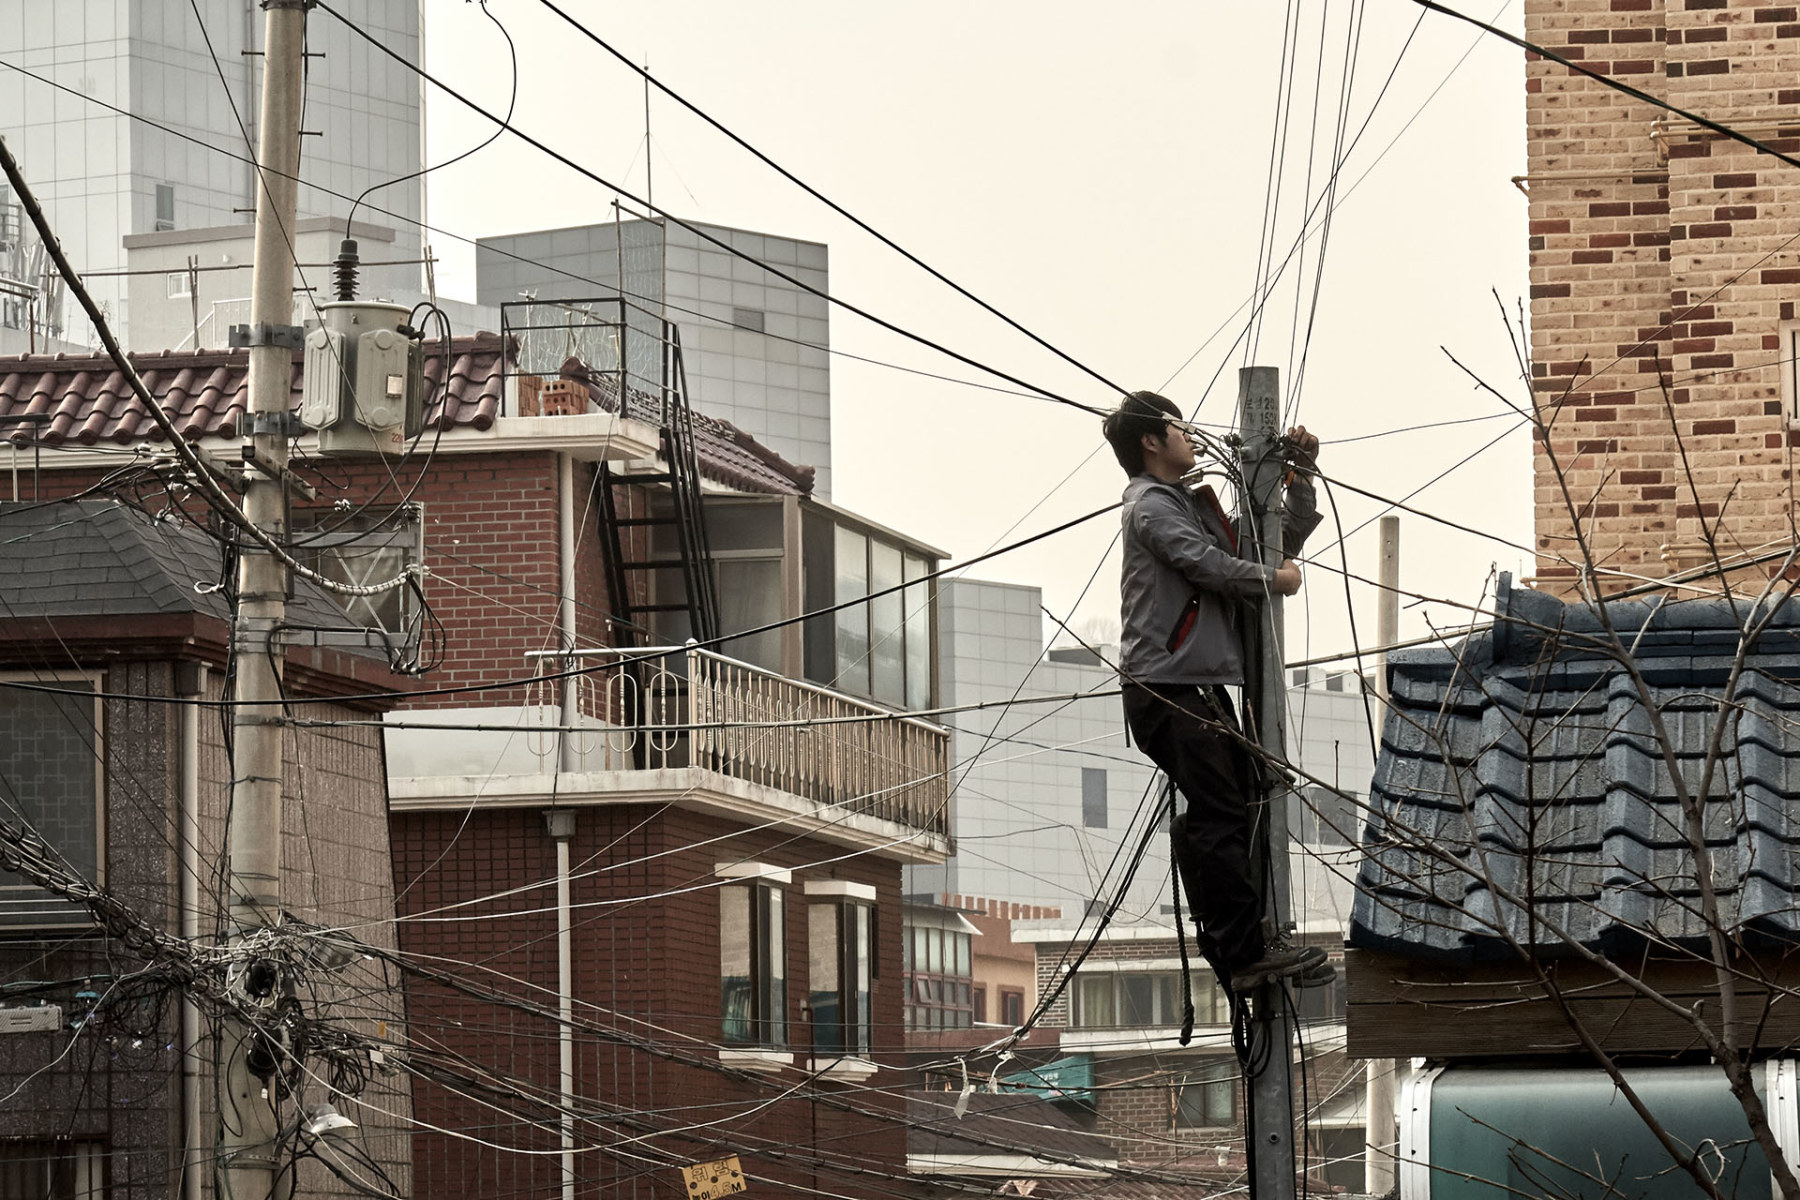 korean power and phone cable photograph